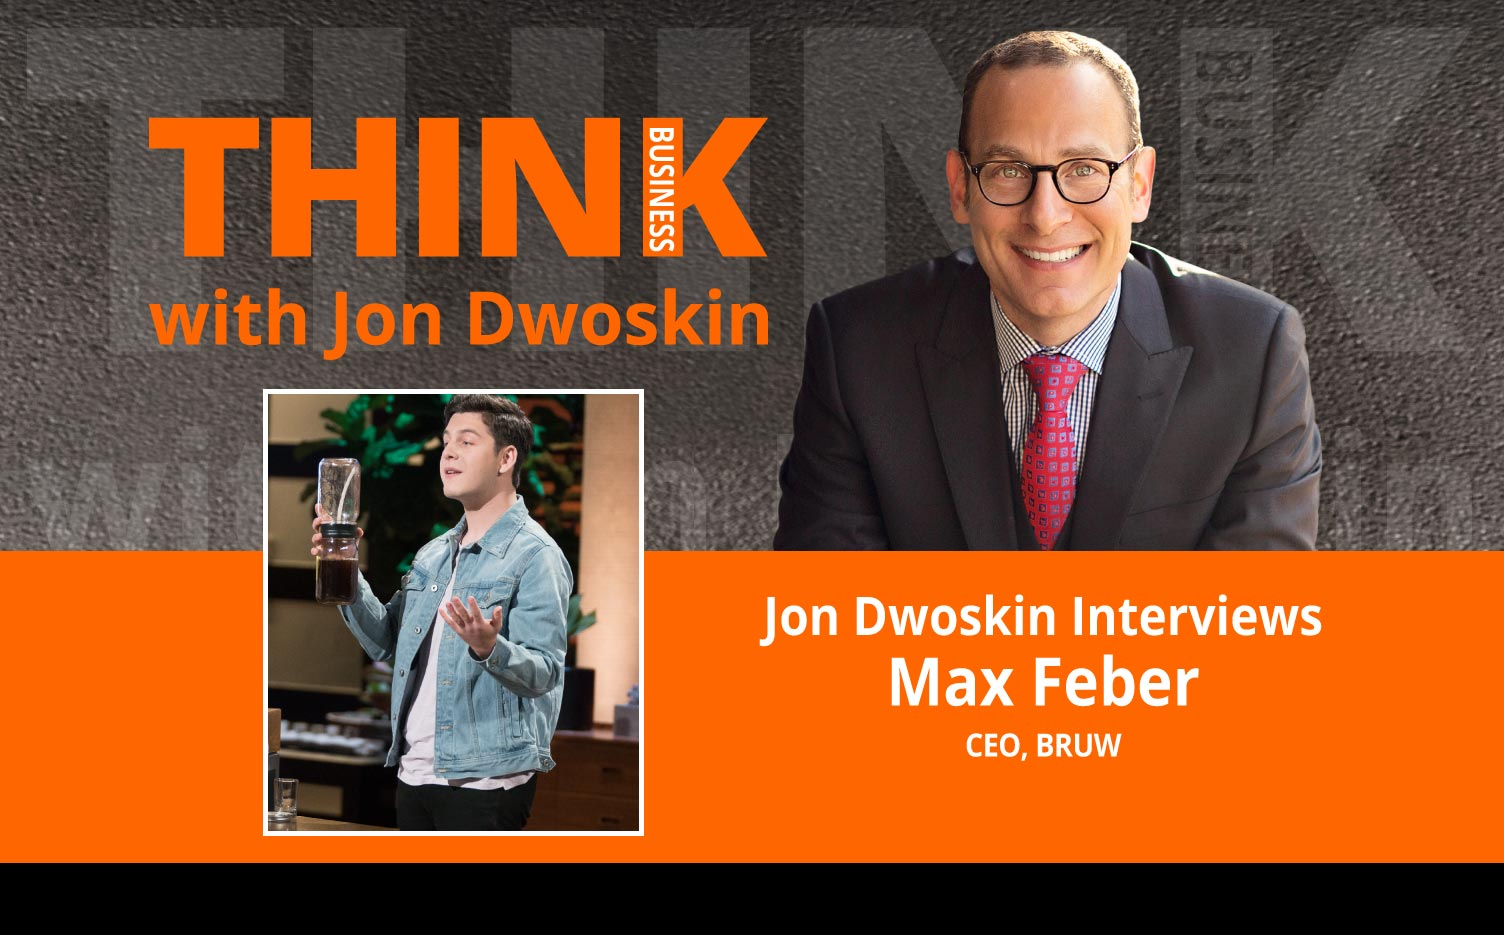 THINK Business Podcast: Jon Dwoskin Interviews Max Feber, CEO, BRUW